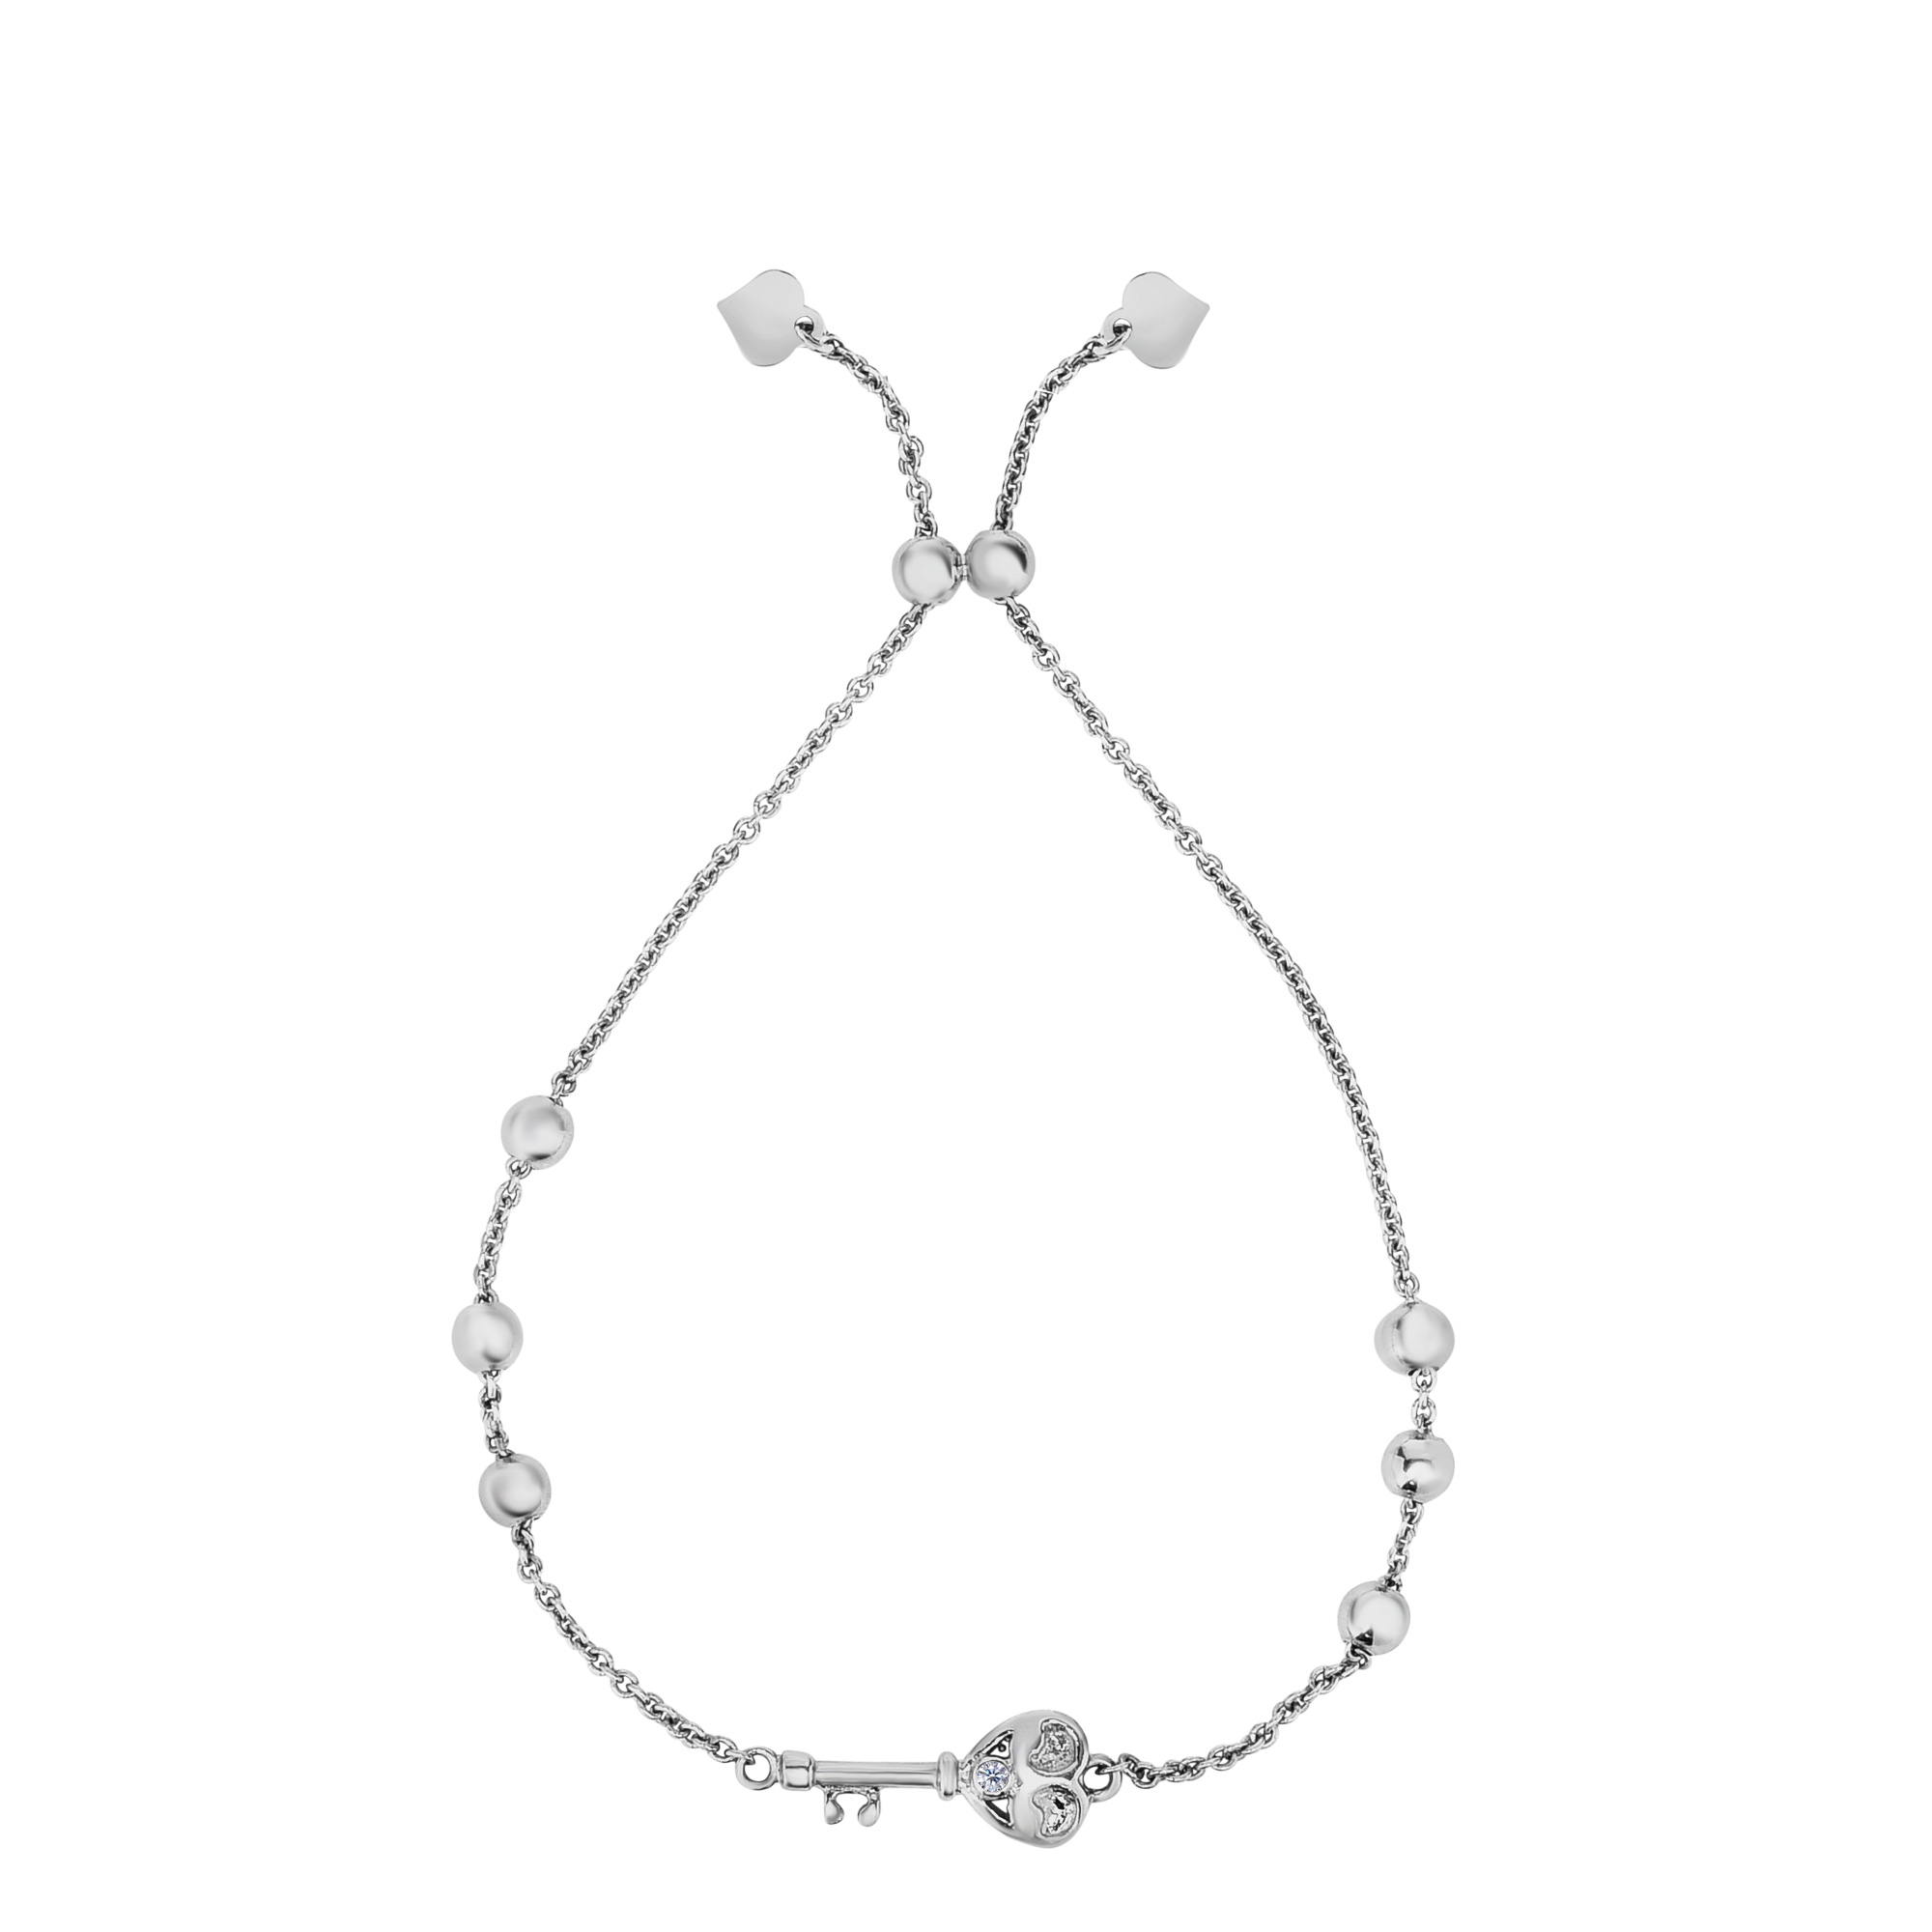 Sterling Silver Key Charm Element Adjustable Bolo Friendship Bracelet , 9.25  Designed for today's fast-moving, contemporary woman, the Friendship bracelets are smart, stylish and easy to wear. Meticulously executed in high quality Rhodium plated sterling silver, these iconic bracelets are easily adjusted to fit any wrist. The Adjustable sliding closure allows you to go from 9.25 inches length to as small as allowed by the design.  Each unique style of our Friendship collection looks beautiful worn as one piece alone or stacked with multiple styles for a layered and modern look. The bracelet comes in an elegant jewelry gift box, perfect for any gift giving occasion.